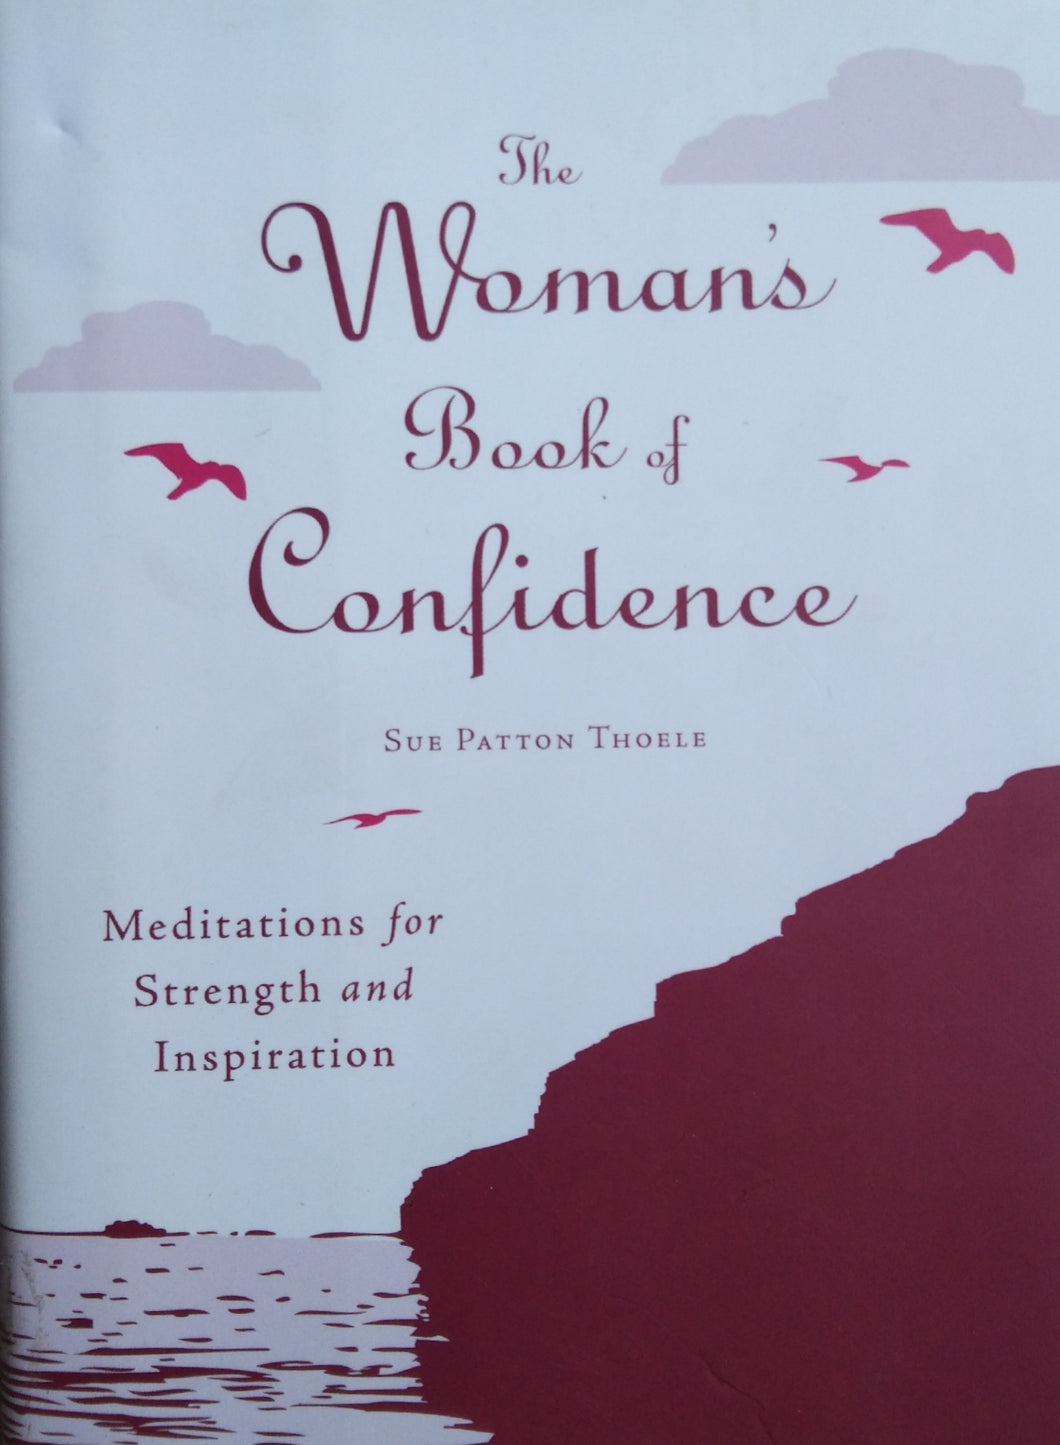 The Woman 's Book of Confidence by Sue Patton Thoele